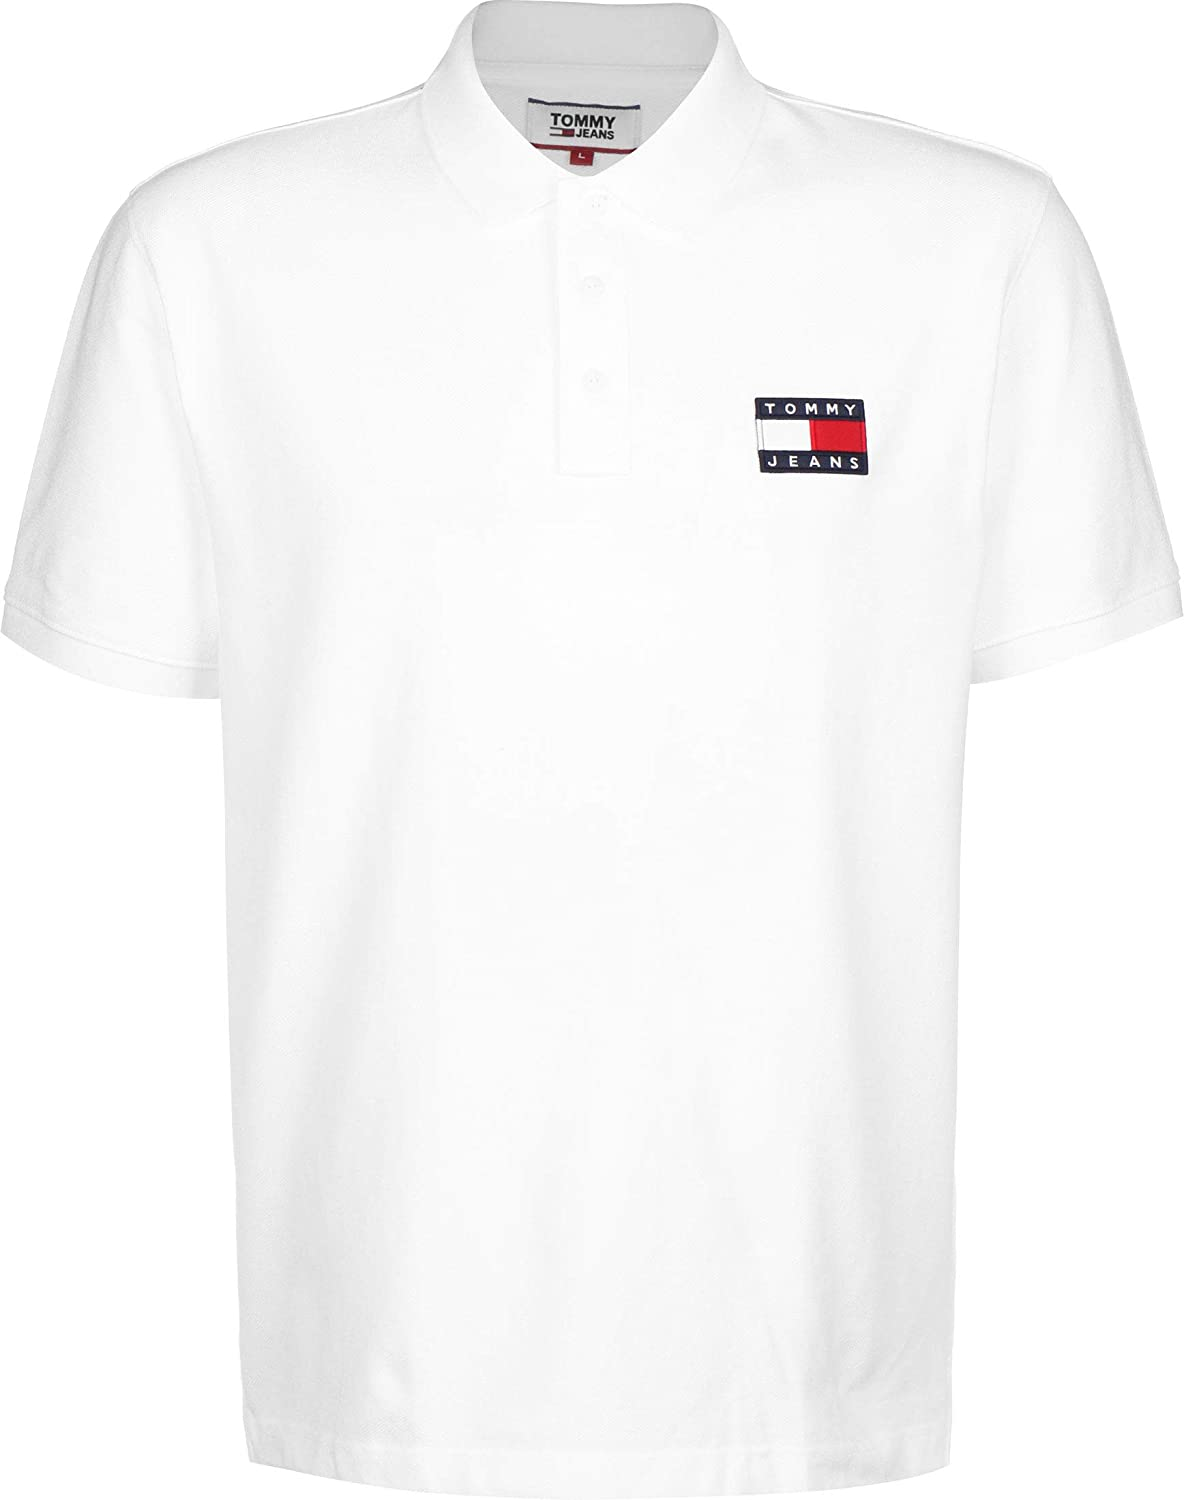 Polo Tommy Jeans Flag Blanco Hombre Small Blanco: Amazon.es: Ropa ...